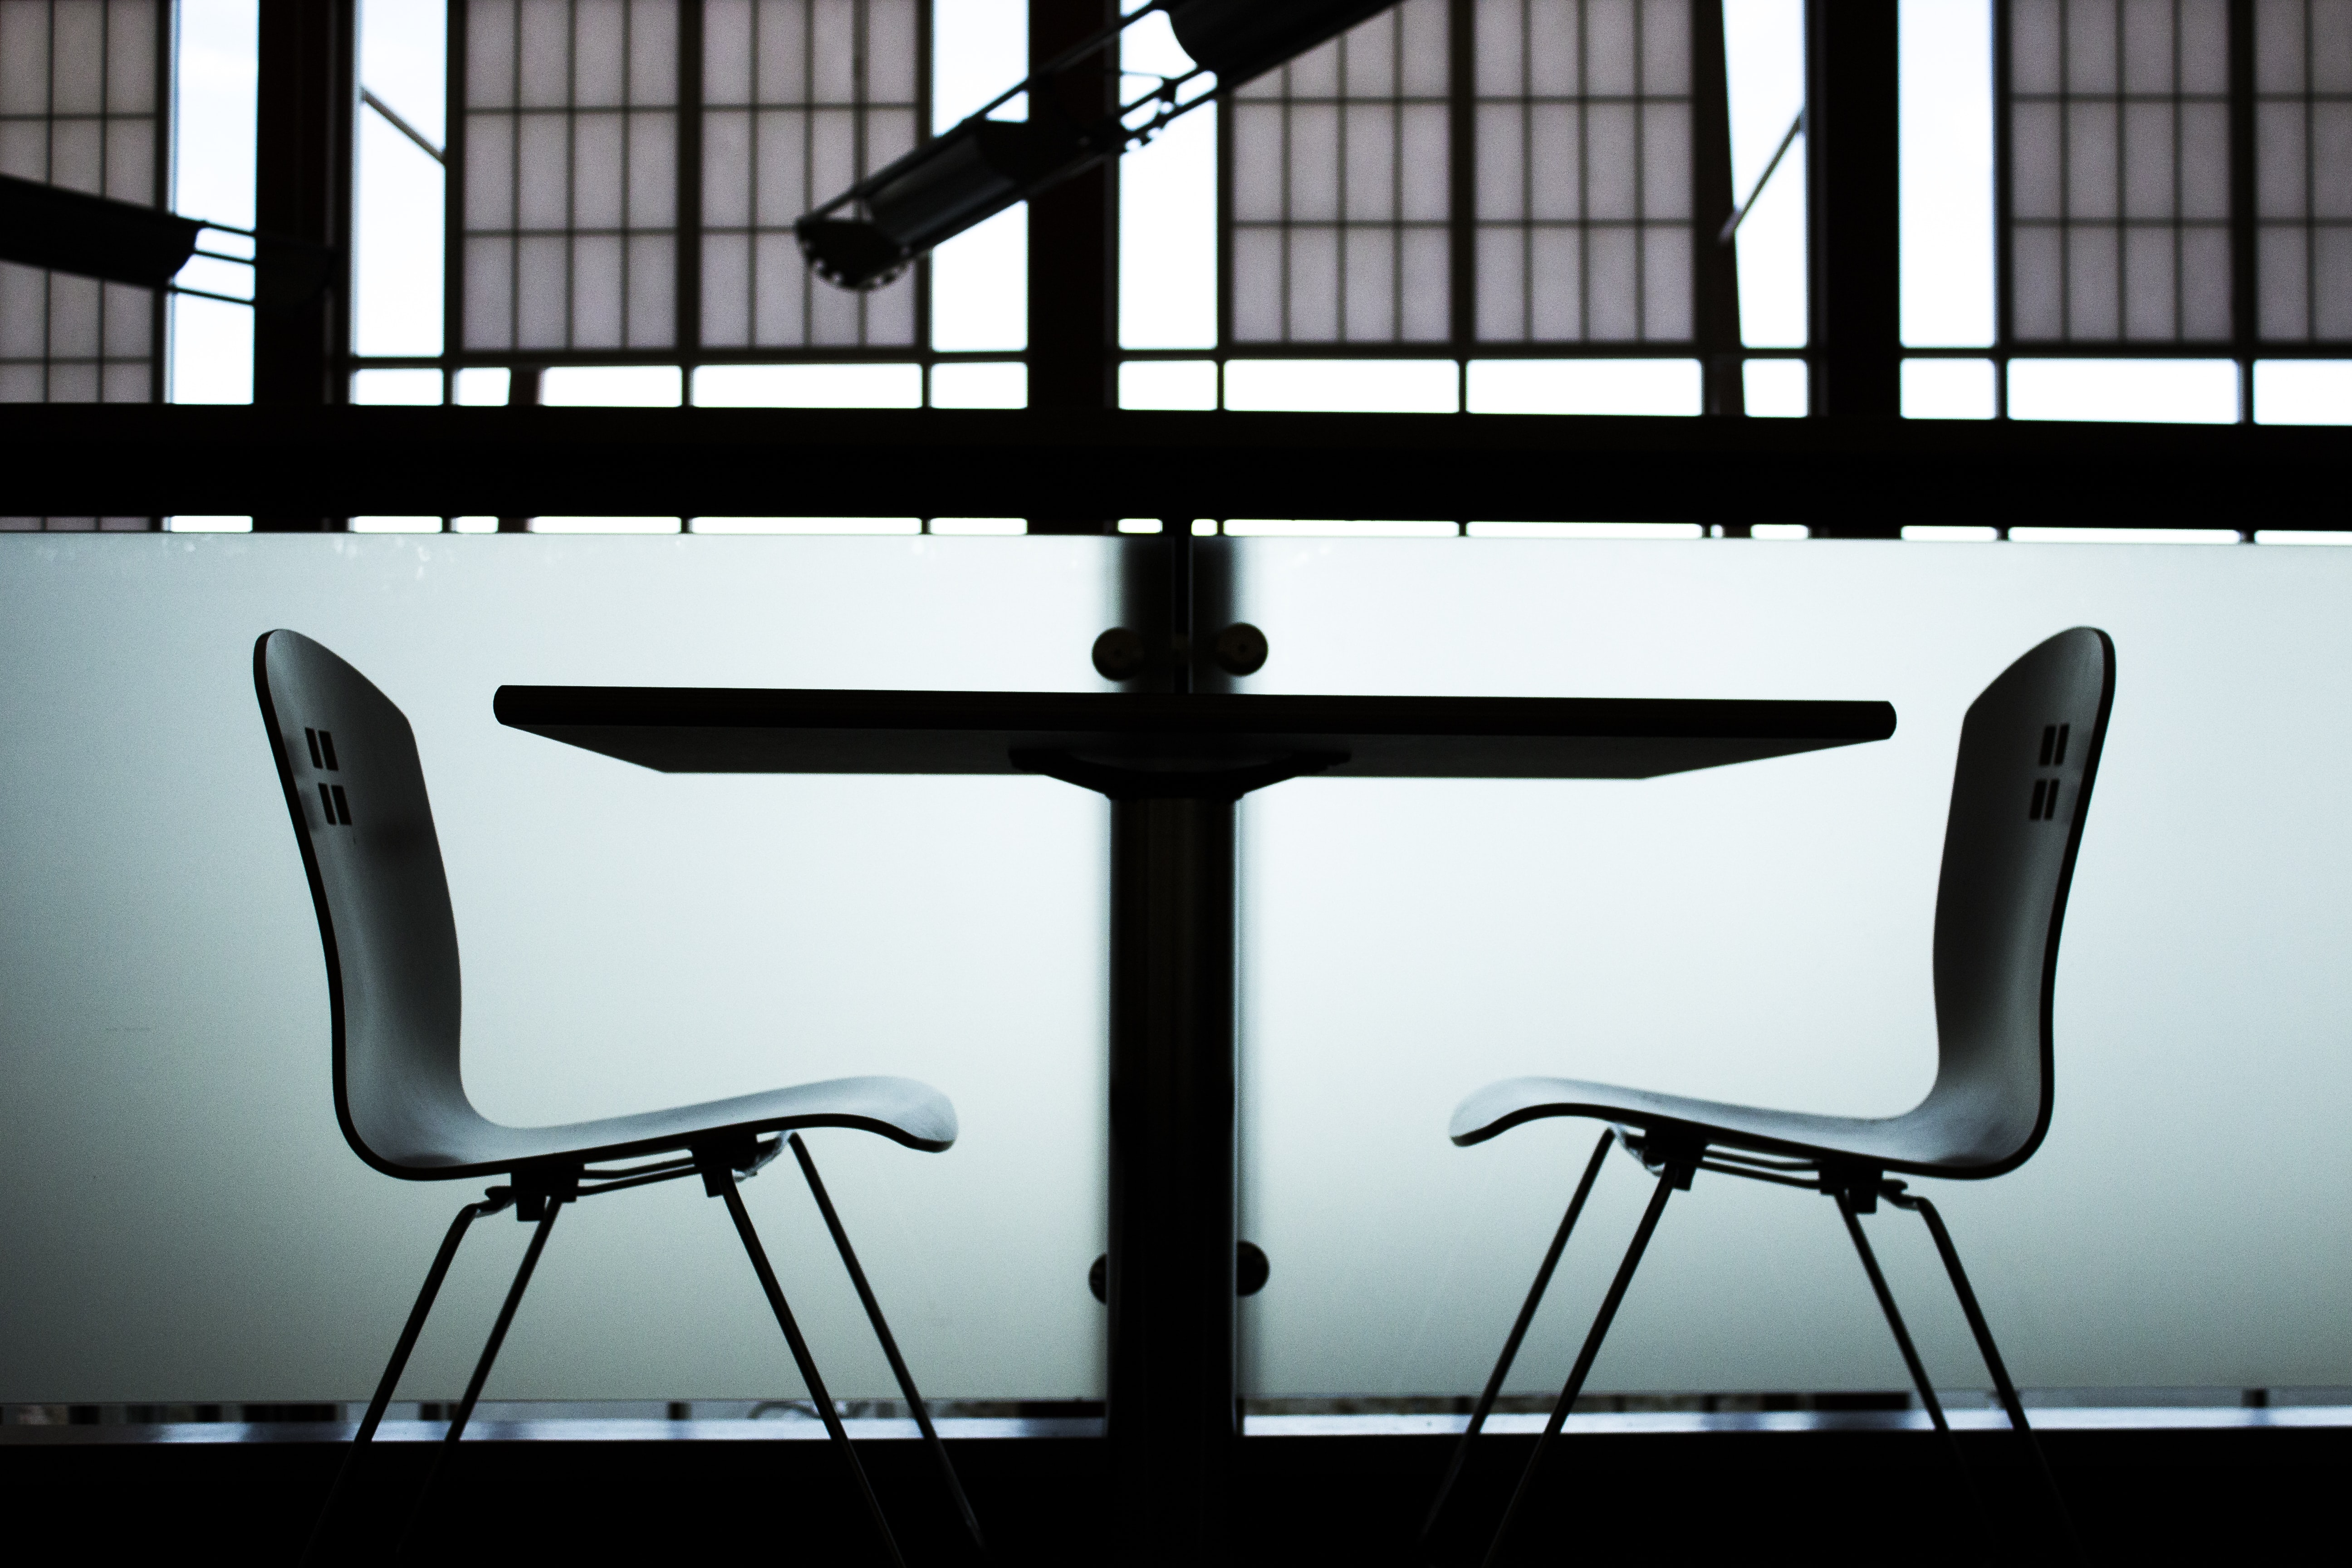 A gloomy side shot of two chairs on two sides of a table